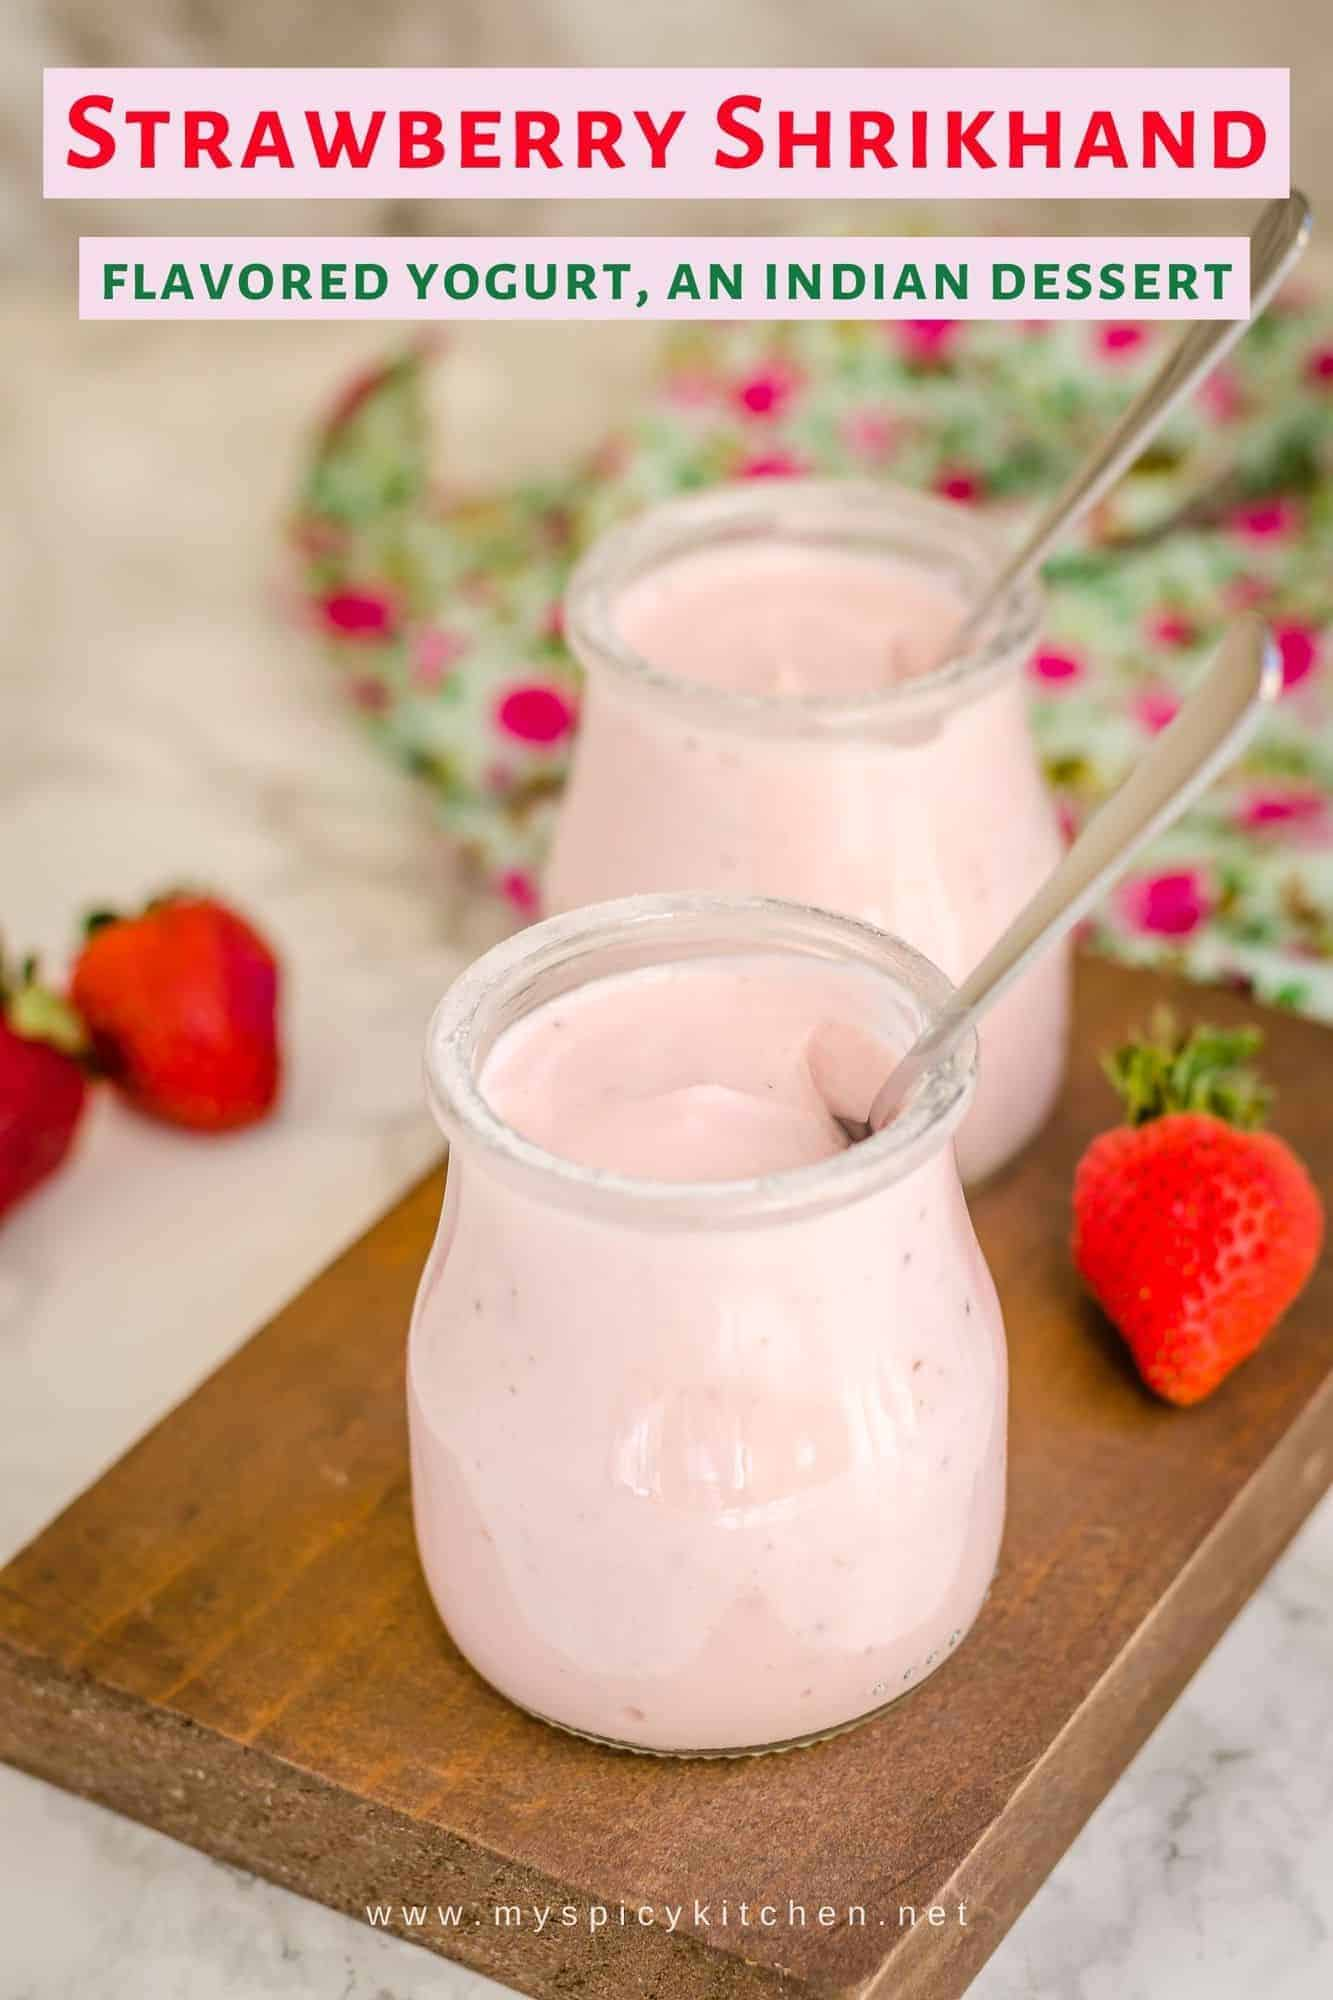 Jars of strawberry shrikhand on a wooden board